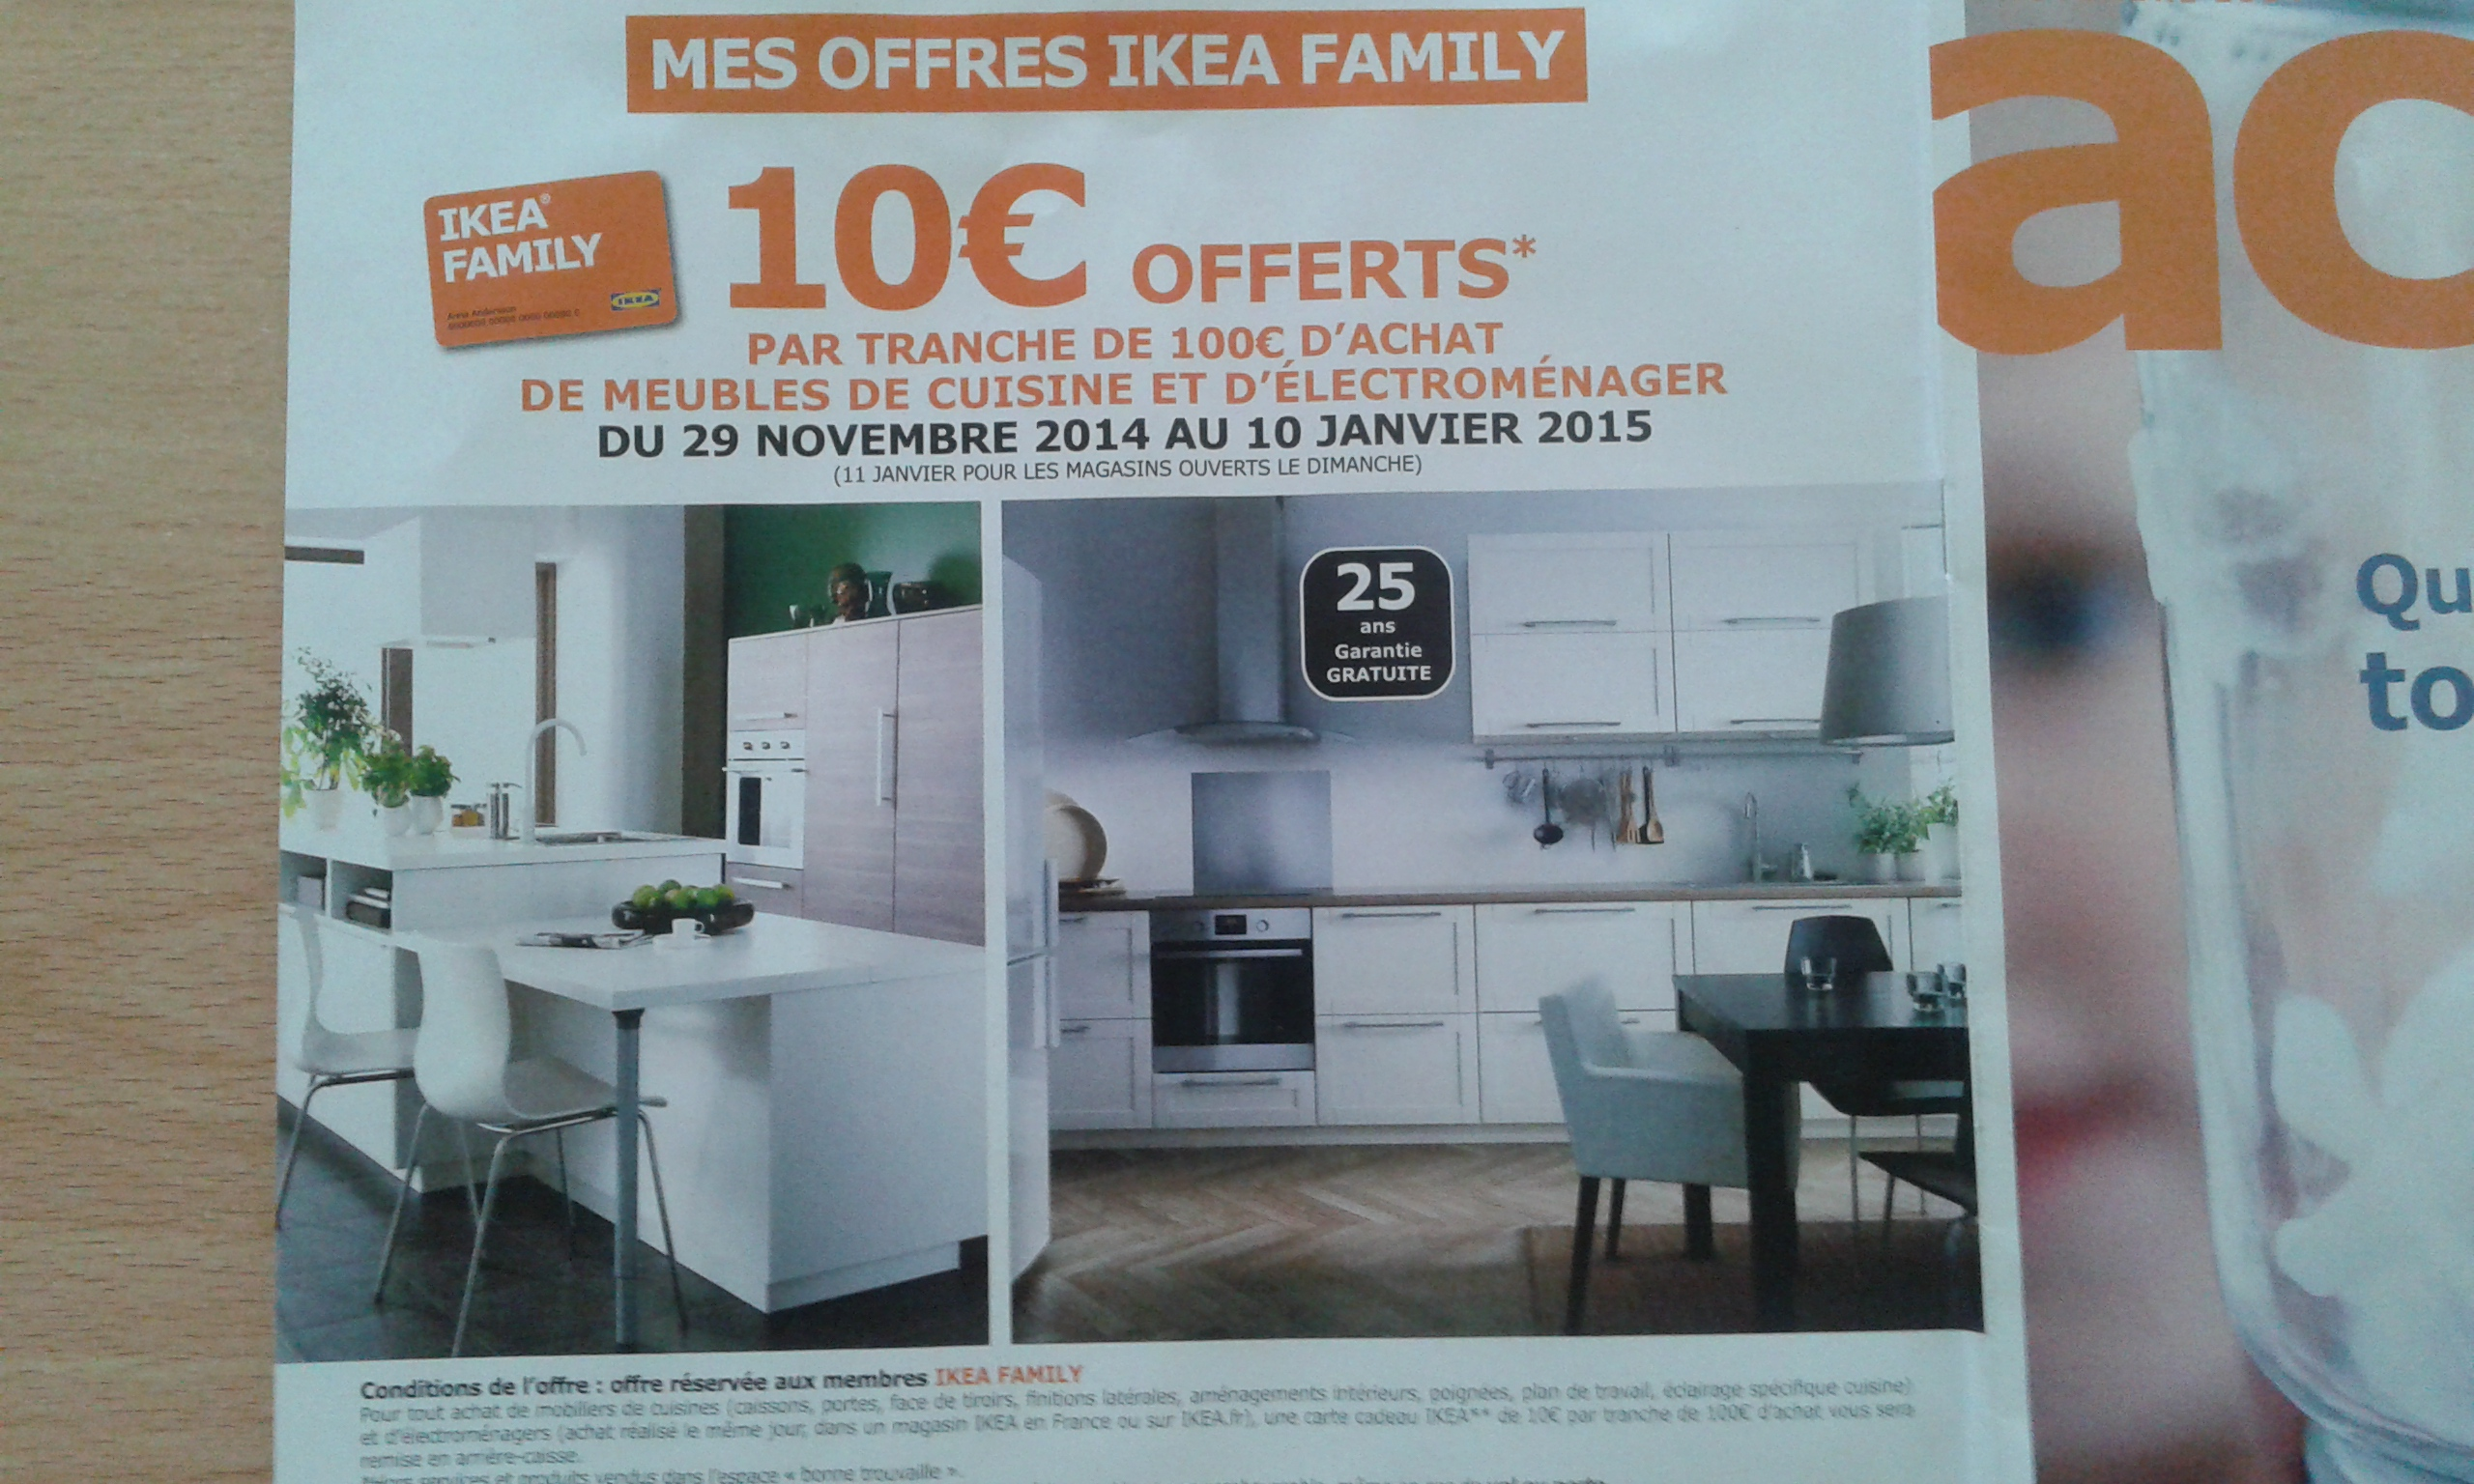 quand la prochaine promo cuisine ikea 300 messages page 7. Black Bedroom Furniture Sets. Home Design Ideas